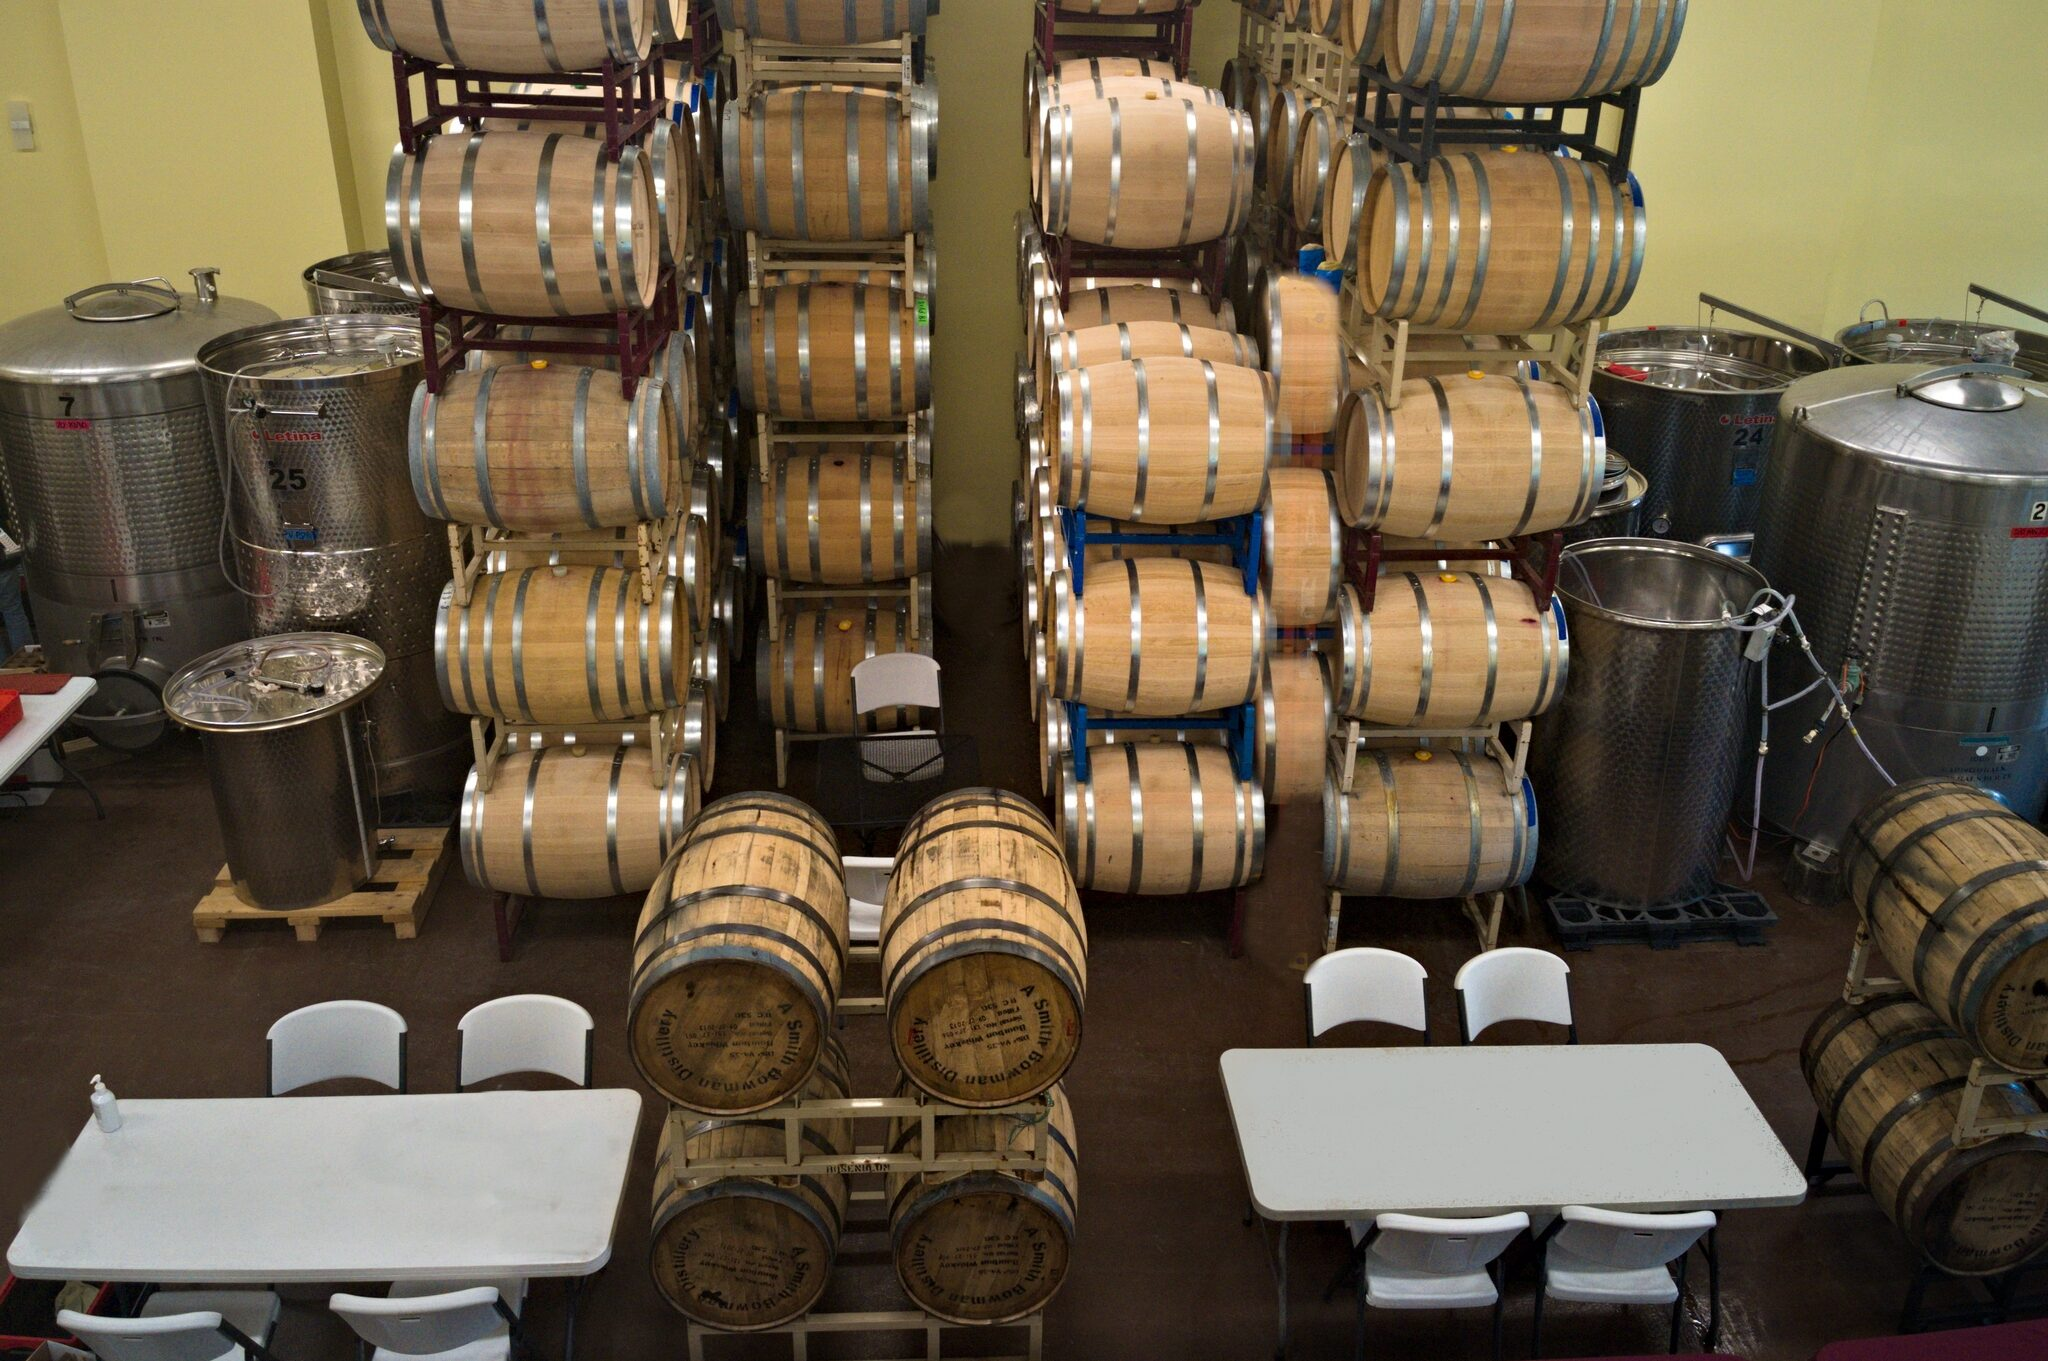 Overhead shot of wine barrels and tanks